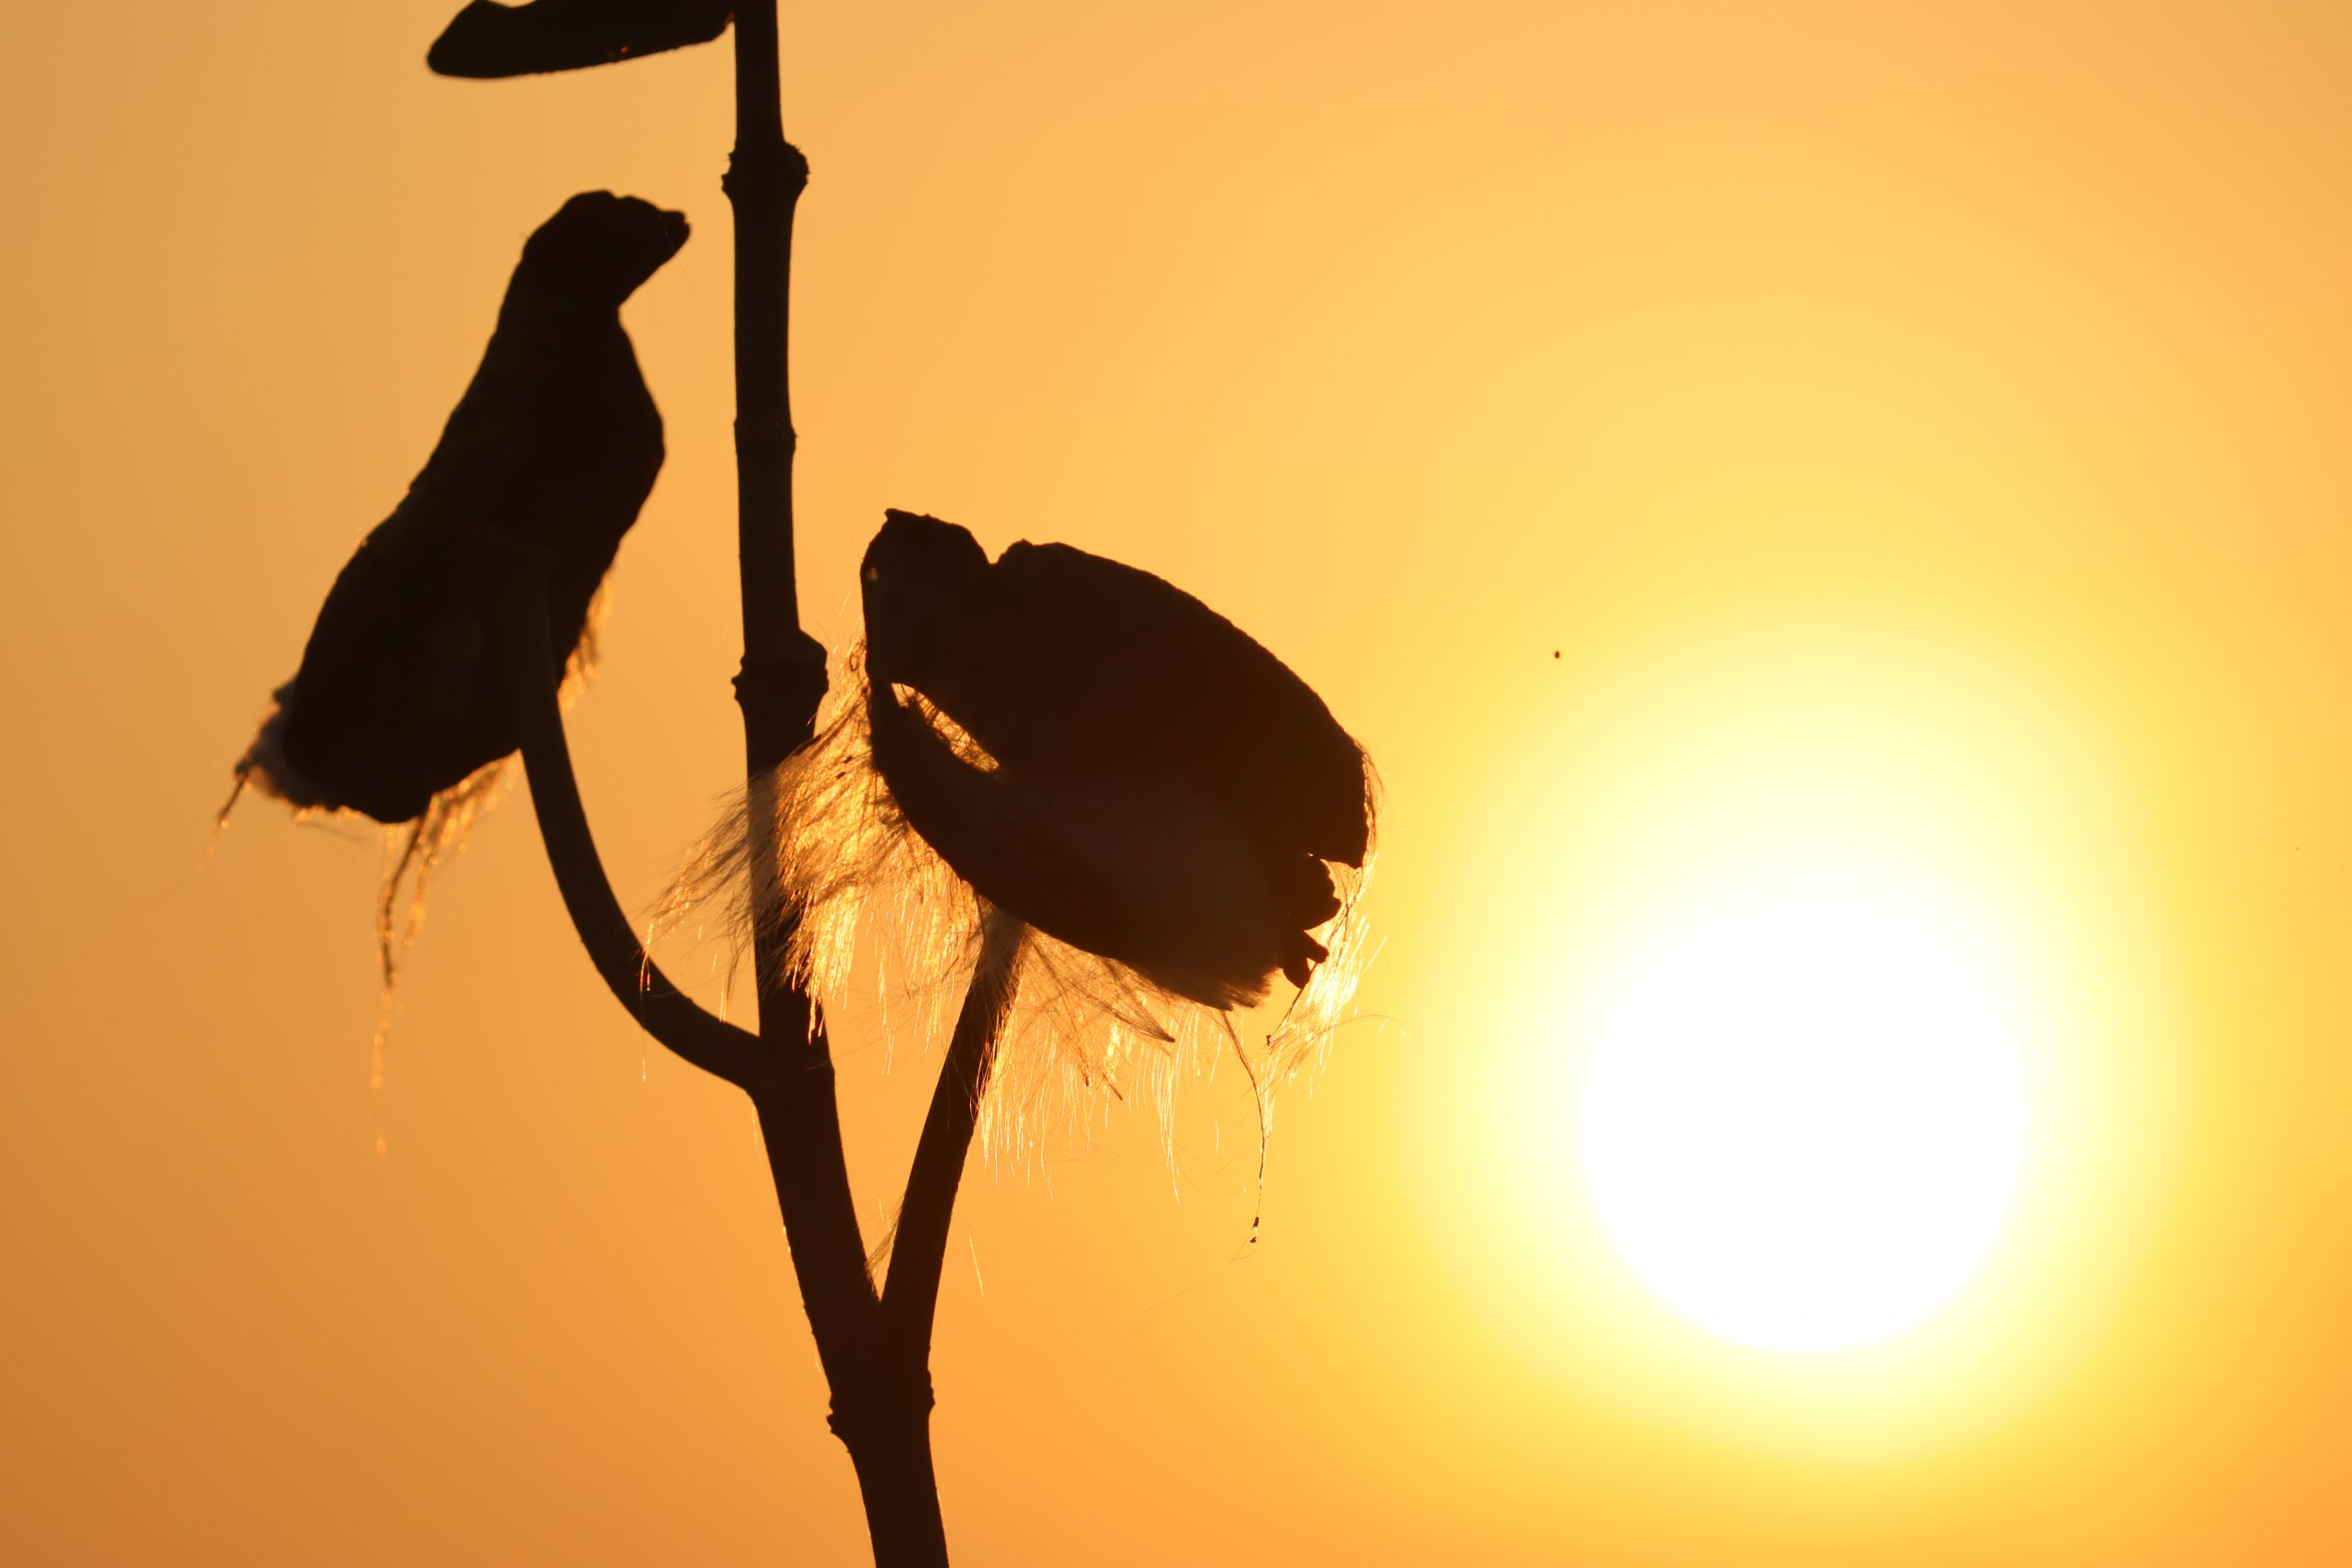 silhouette of cotton tree close-up